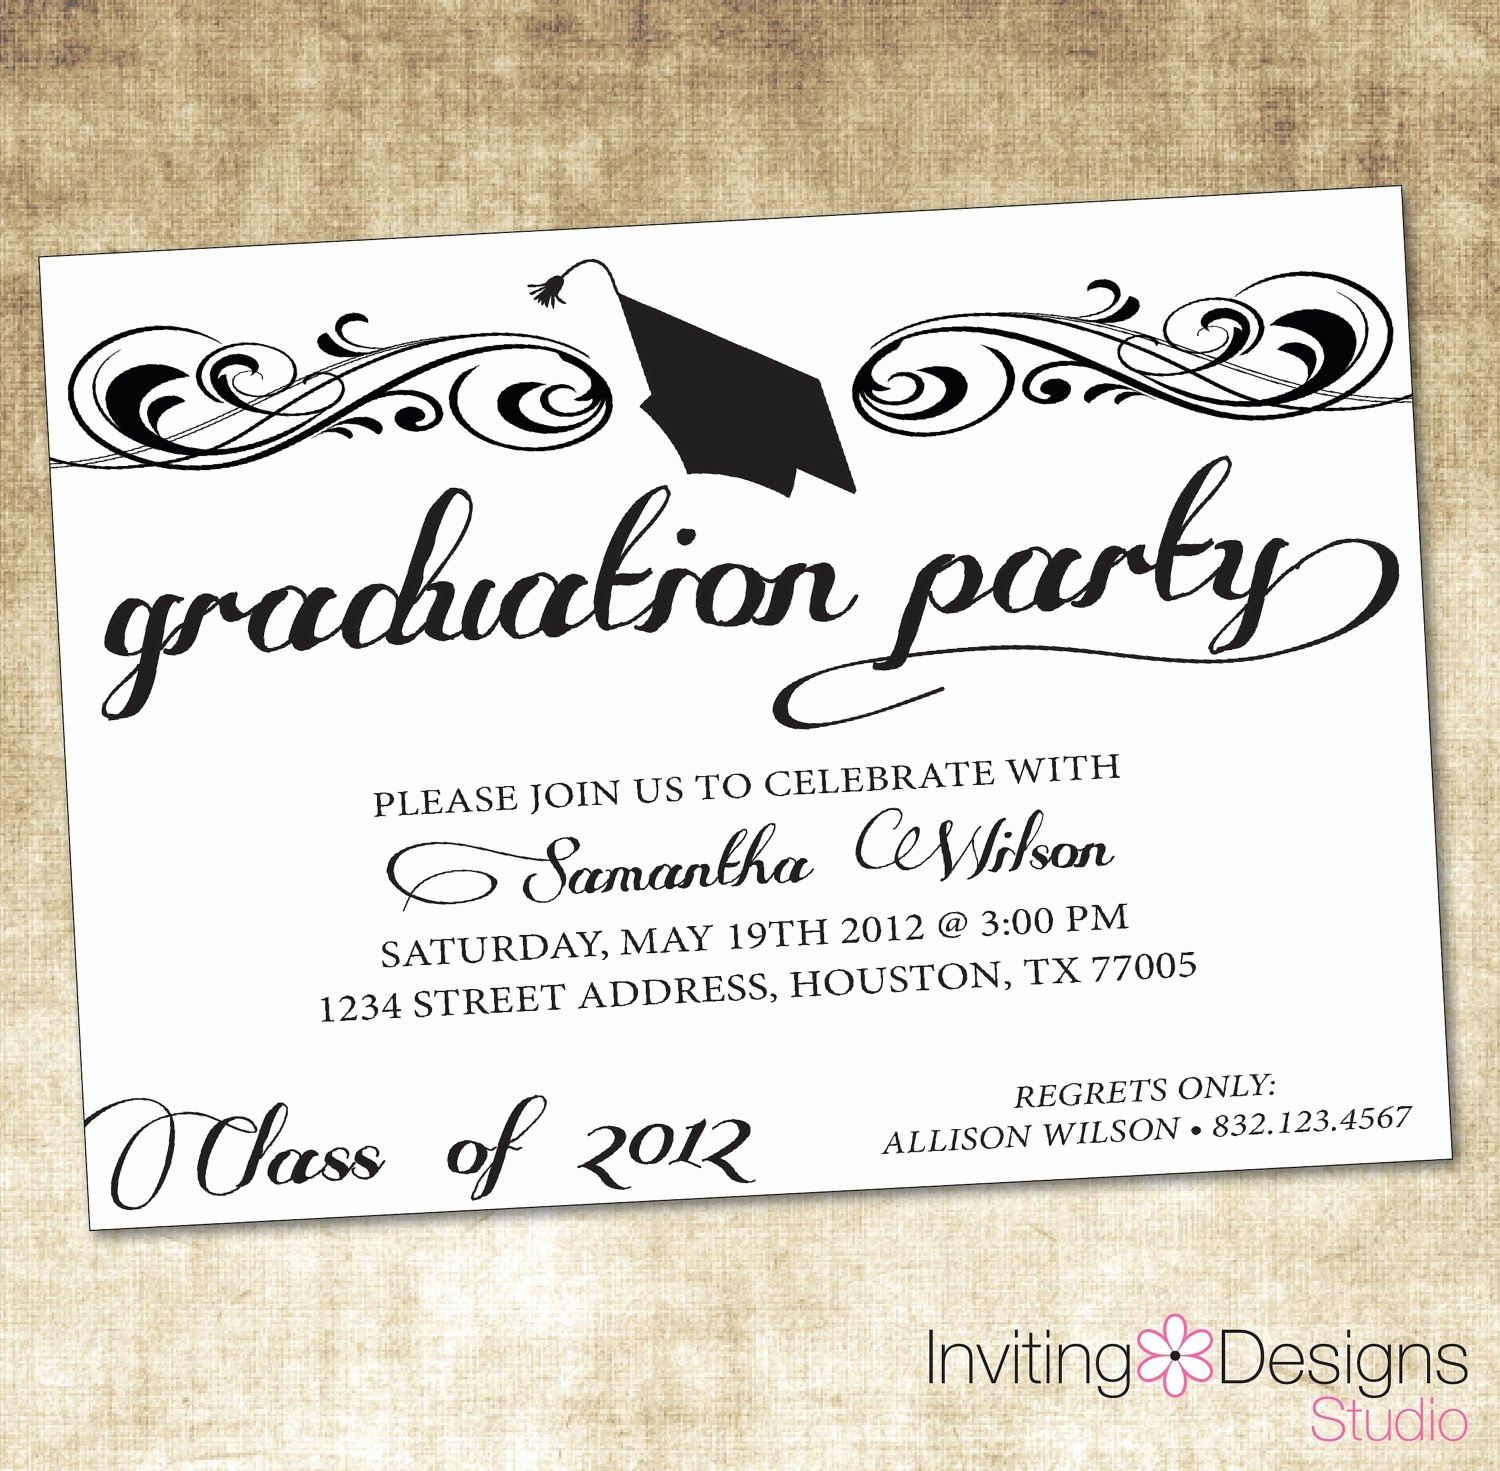 Wording for Graduation Invitation Fresh Graduation Party Invitations Graduation Party